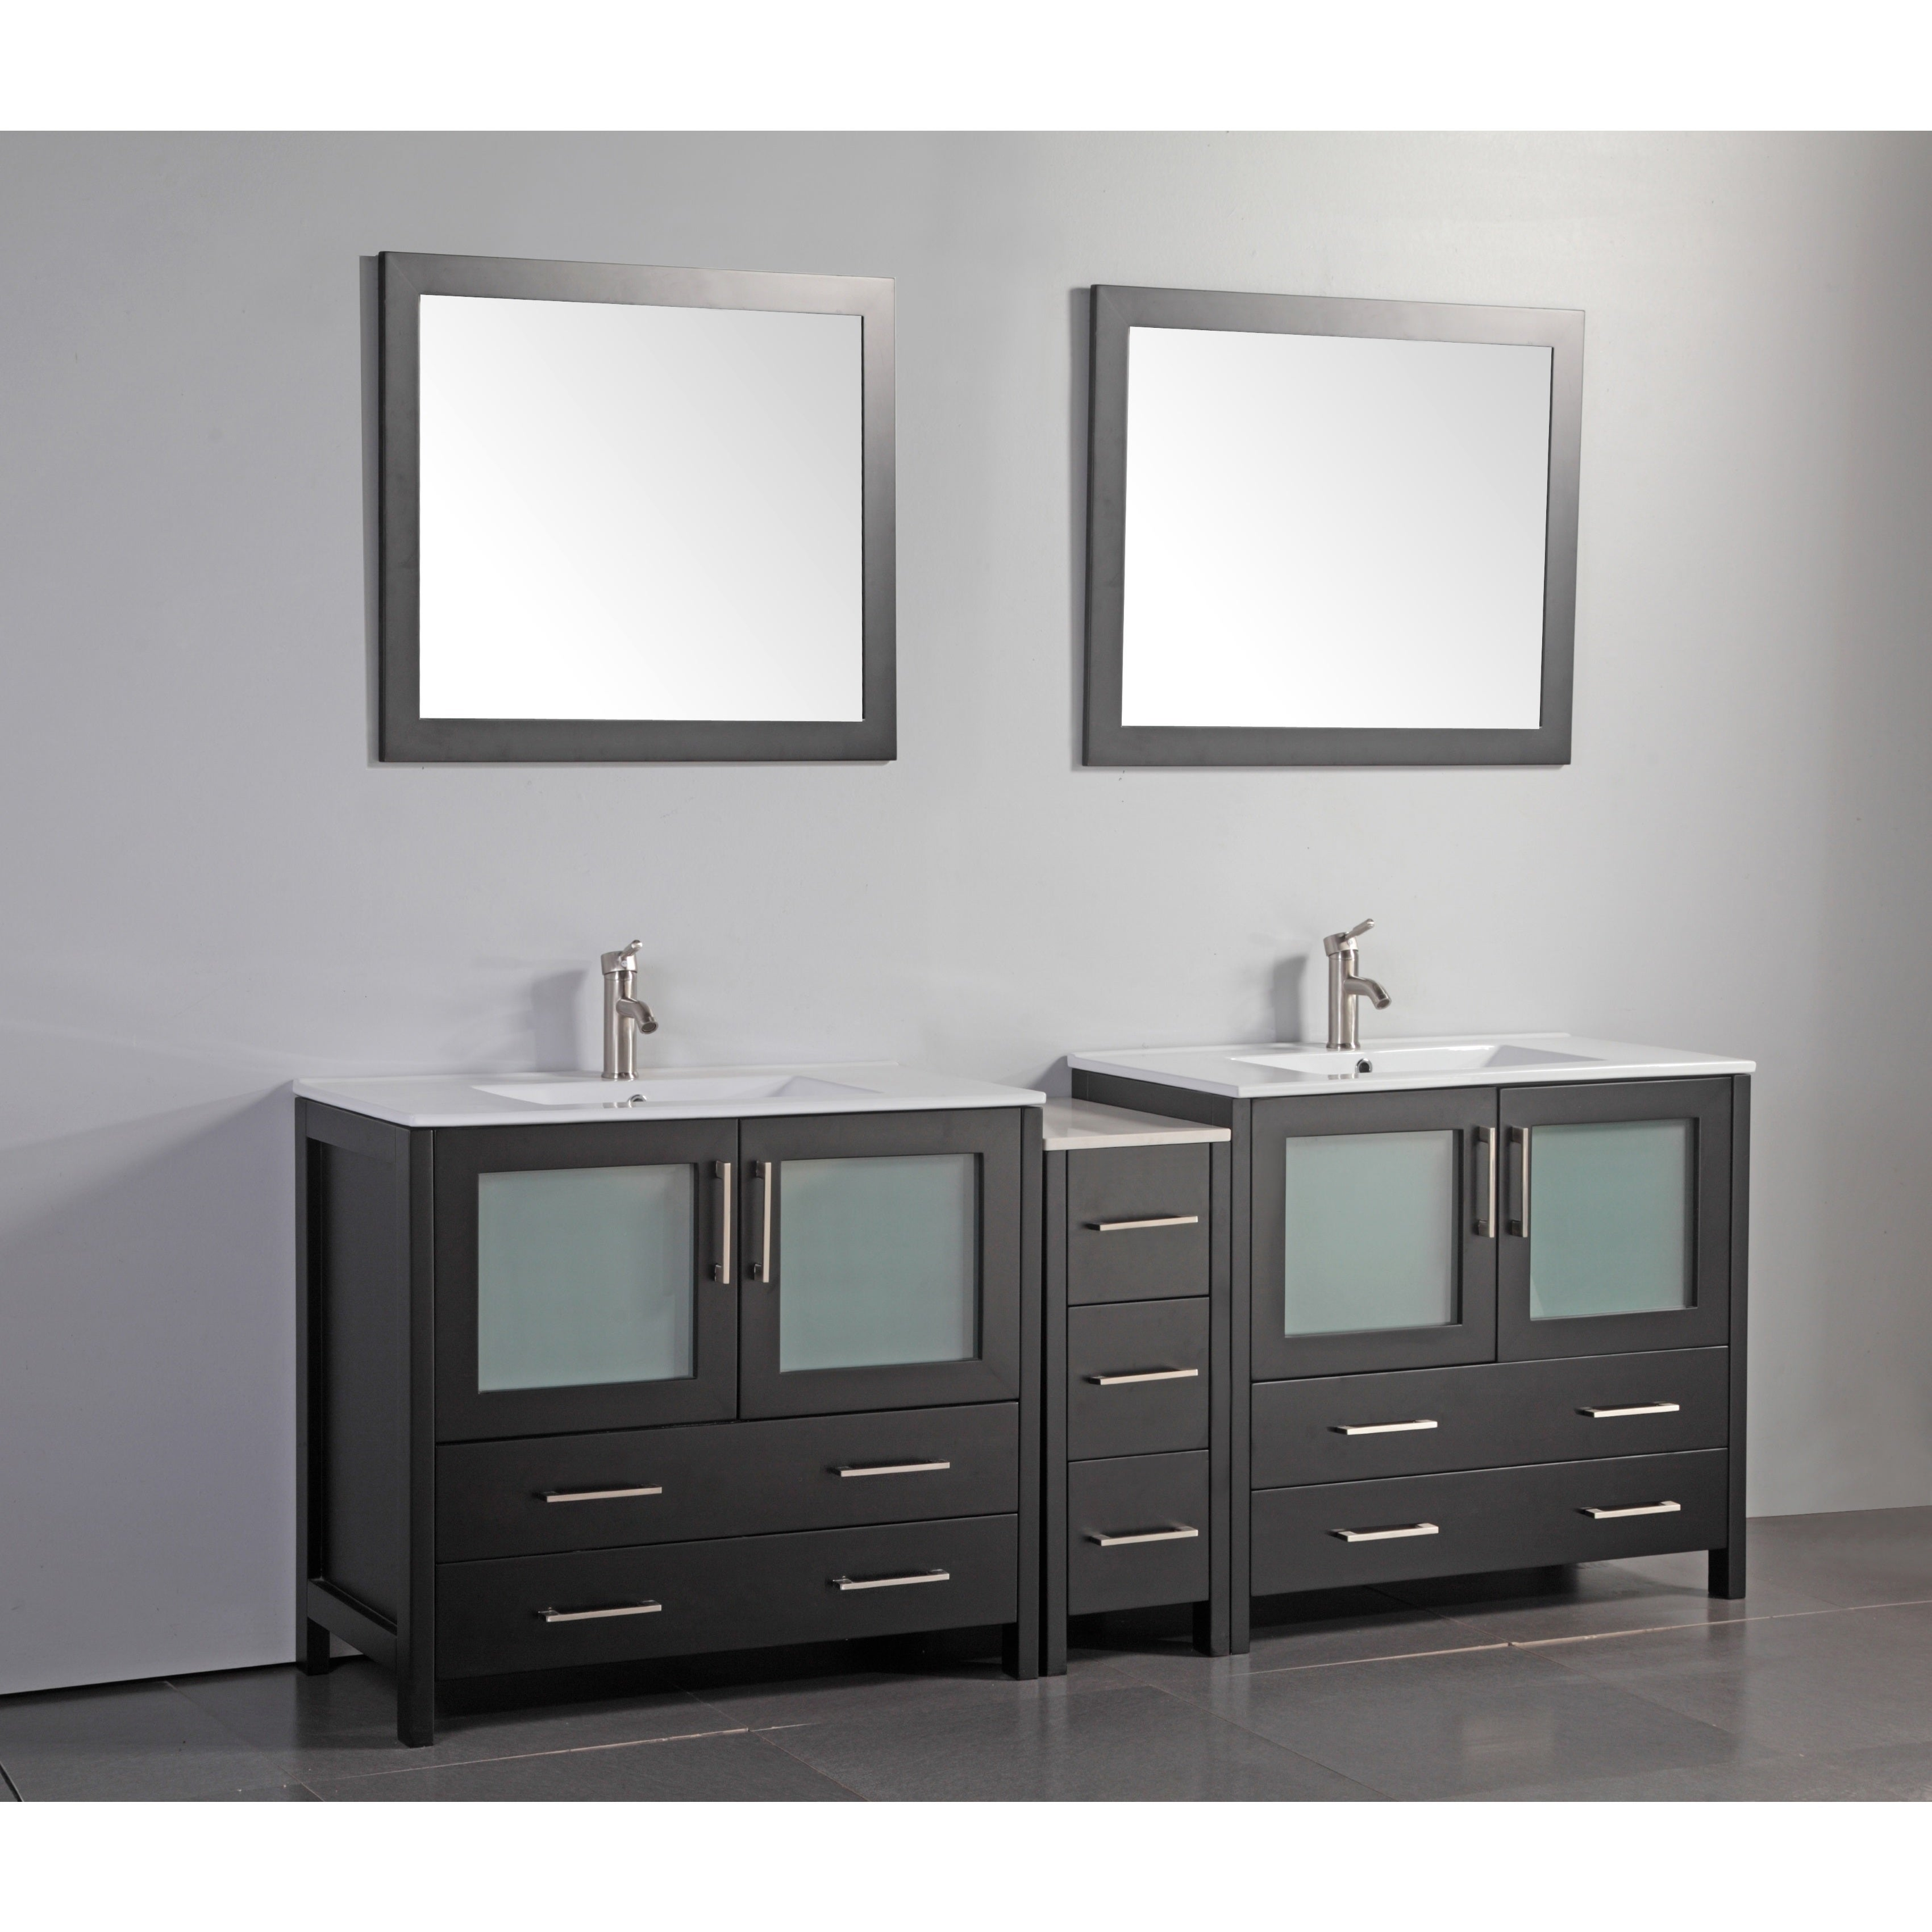 Vanity Art 84 Inch Double Sink Bathroom Vanity Set With Ceramic Top   Free  Shipping Today   Overstock.com   19404478